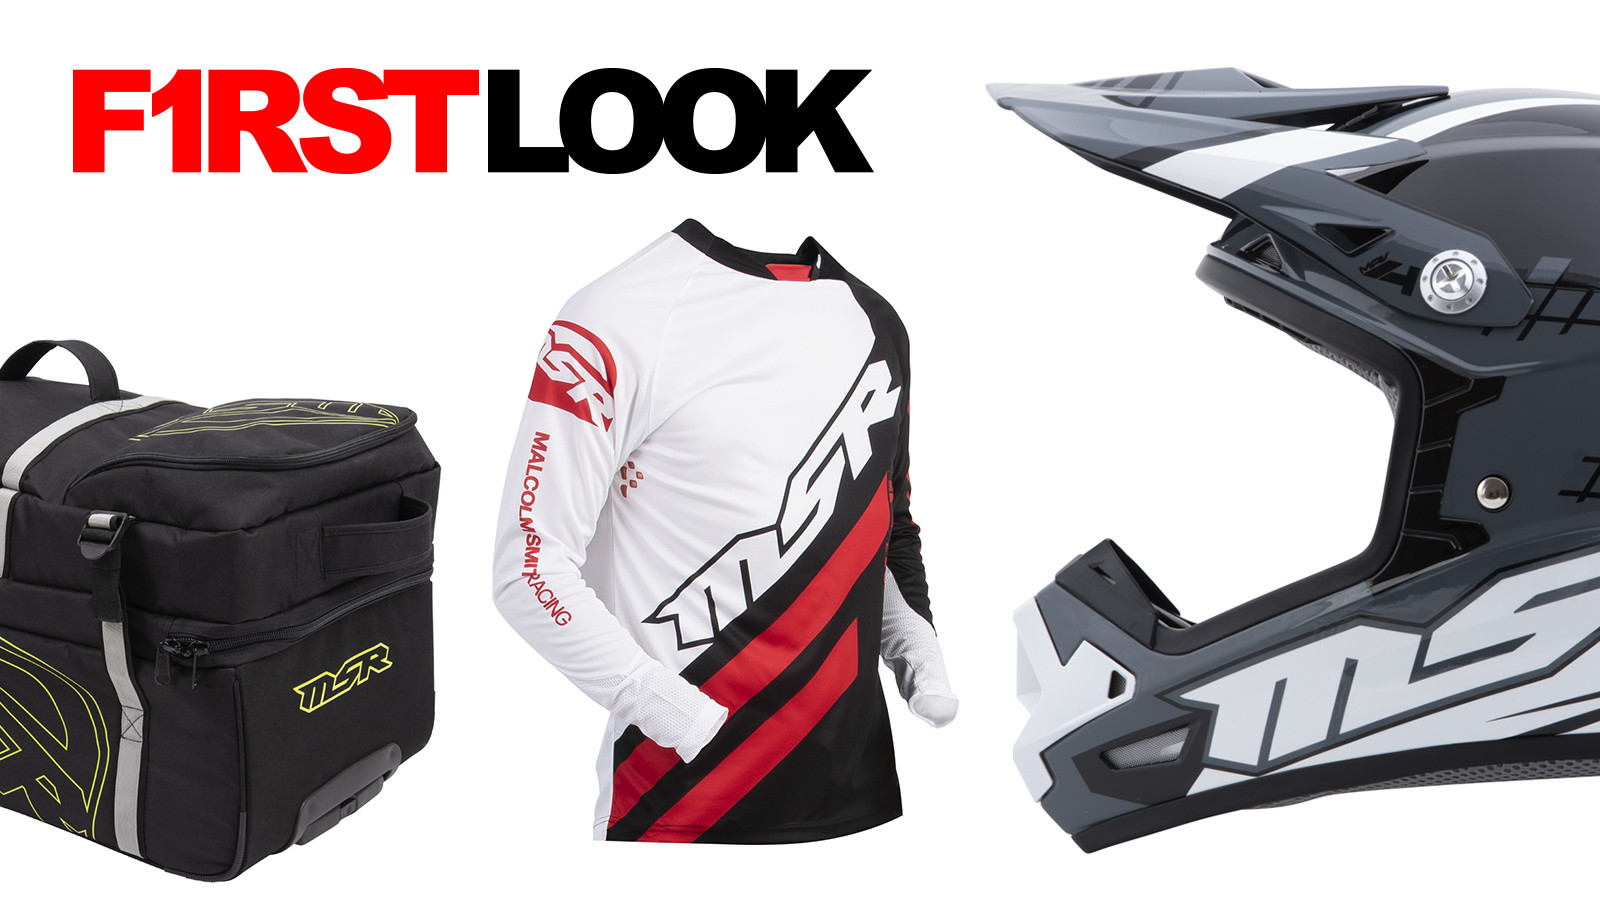 First Look: 2019 MSR Gear